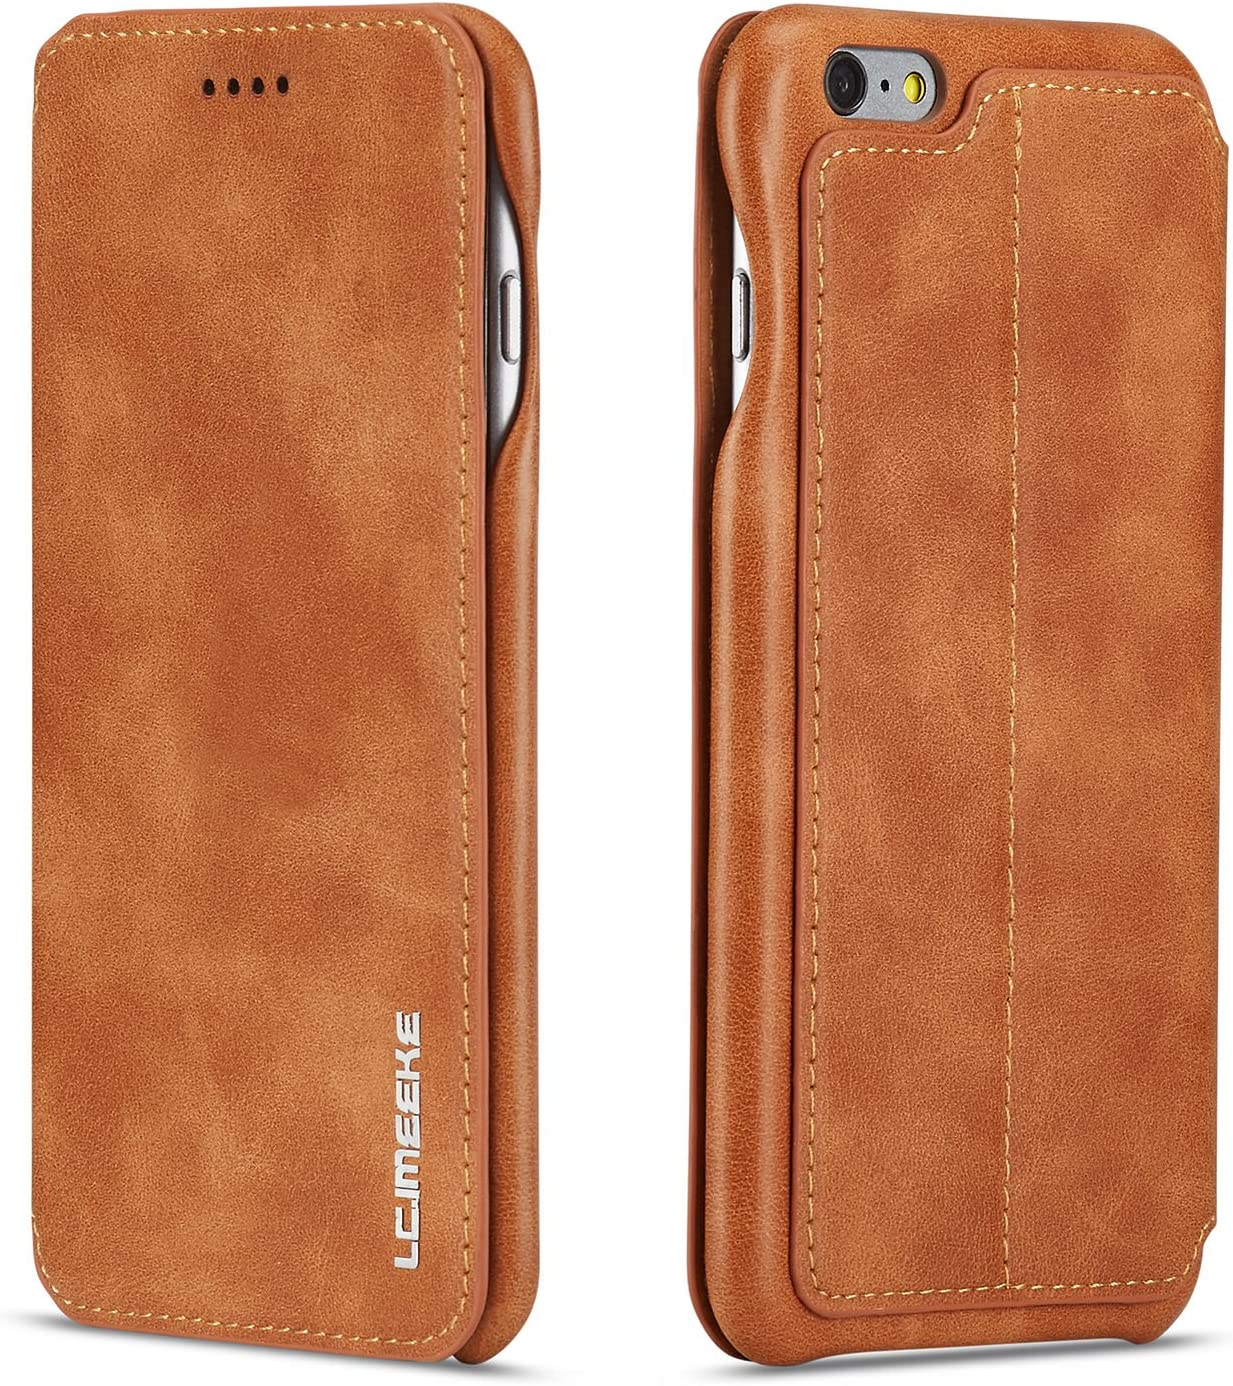 QLTYPRI iPhone 6 Plus Case iPhone 6S Plus Case Vintage Slim PU Leather Case with Credit Card Holder Kickstand Feature Classic Design Shockproof Protective Durable Wallet Case for iPhone 6P 6SP - Brown